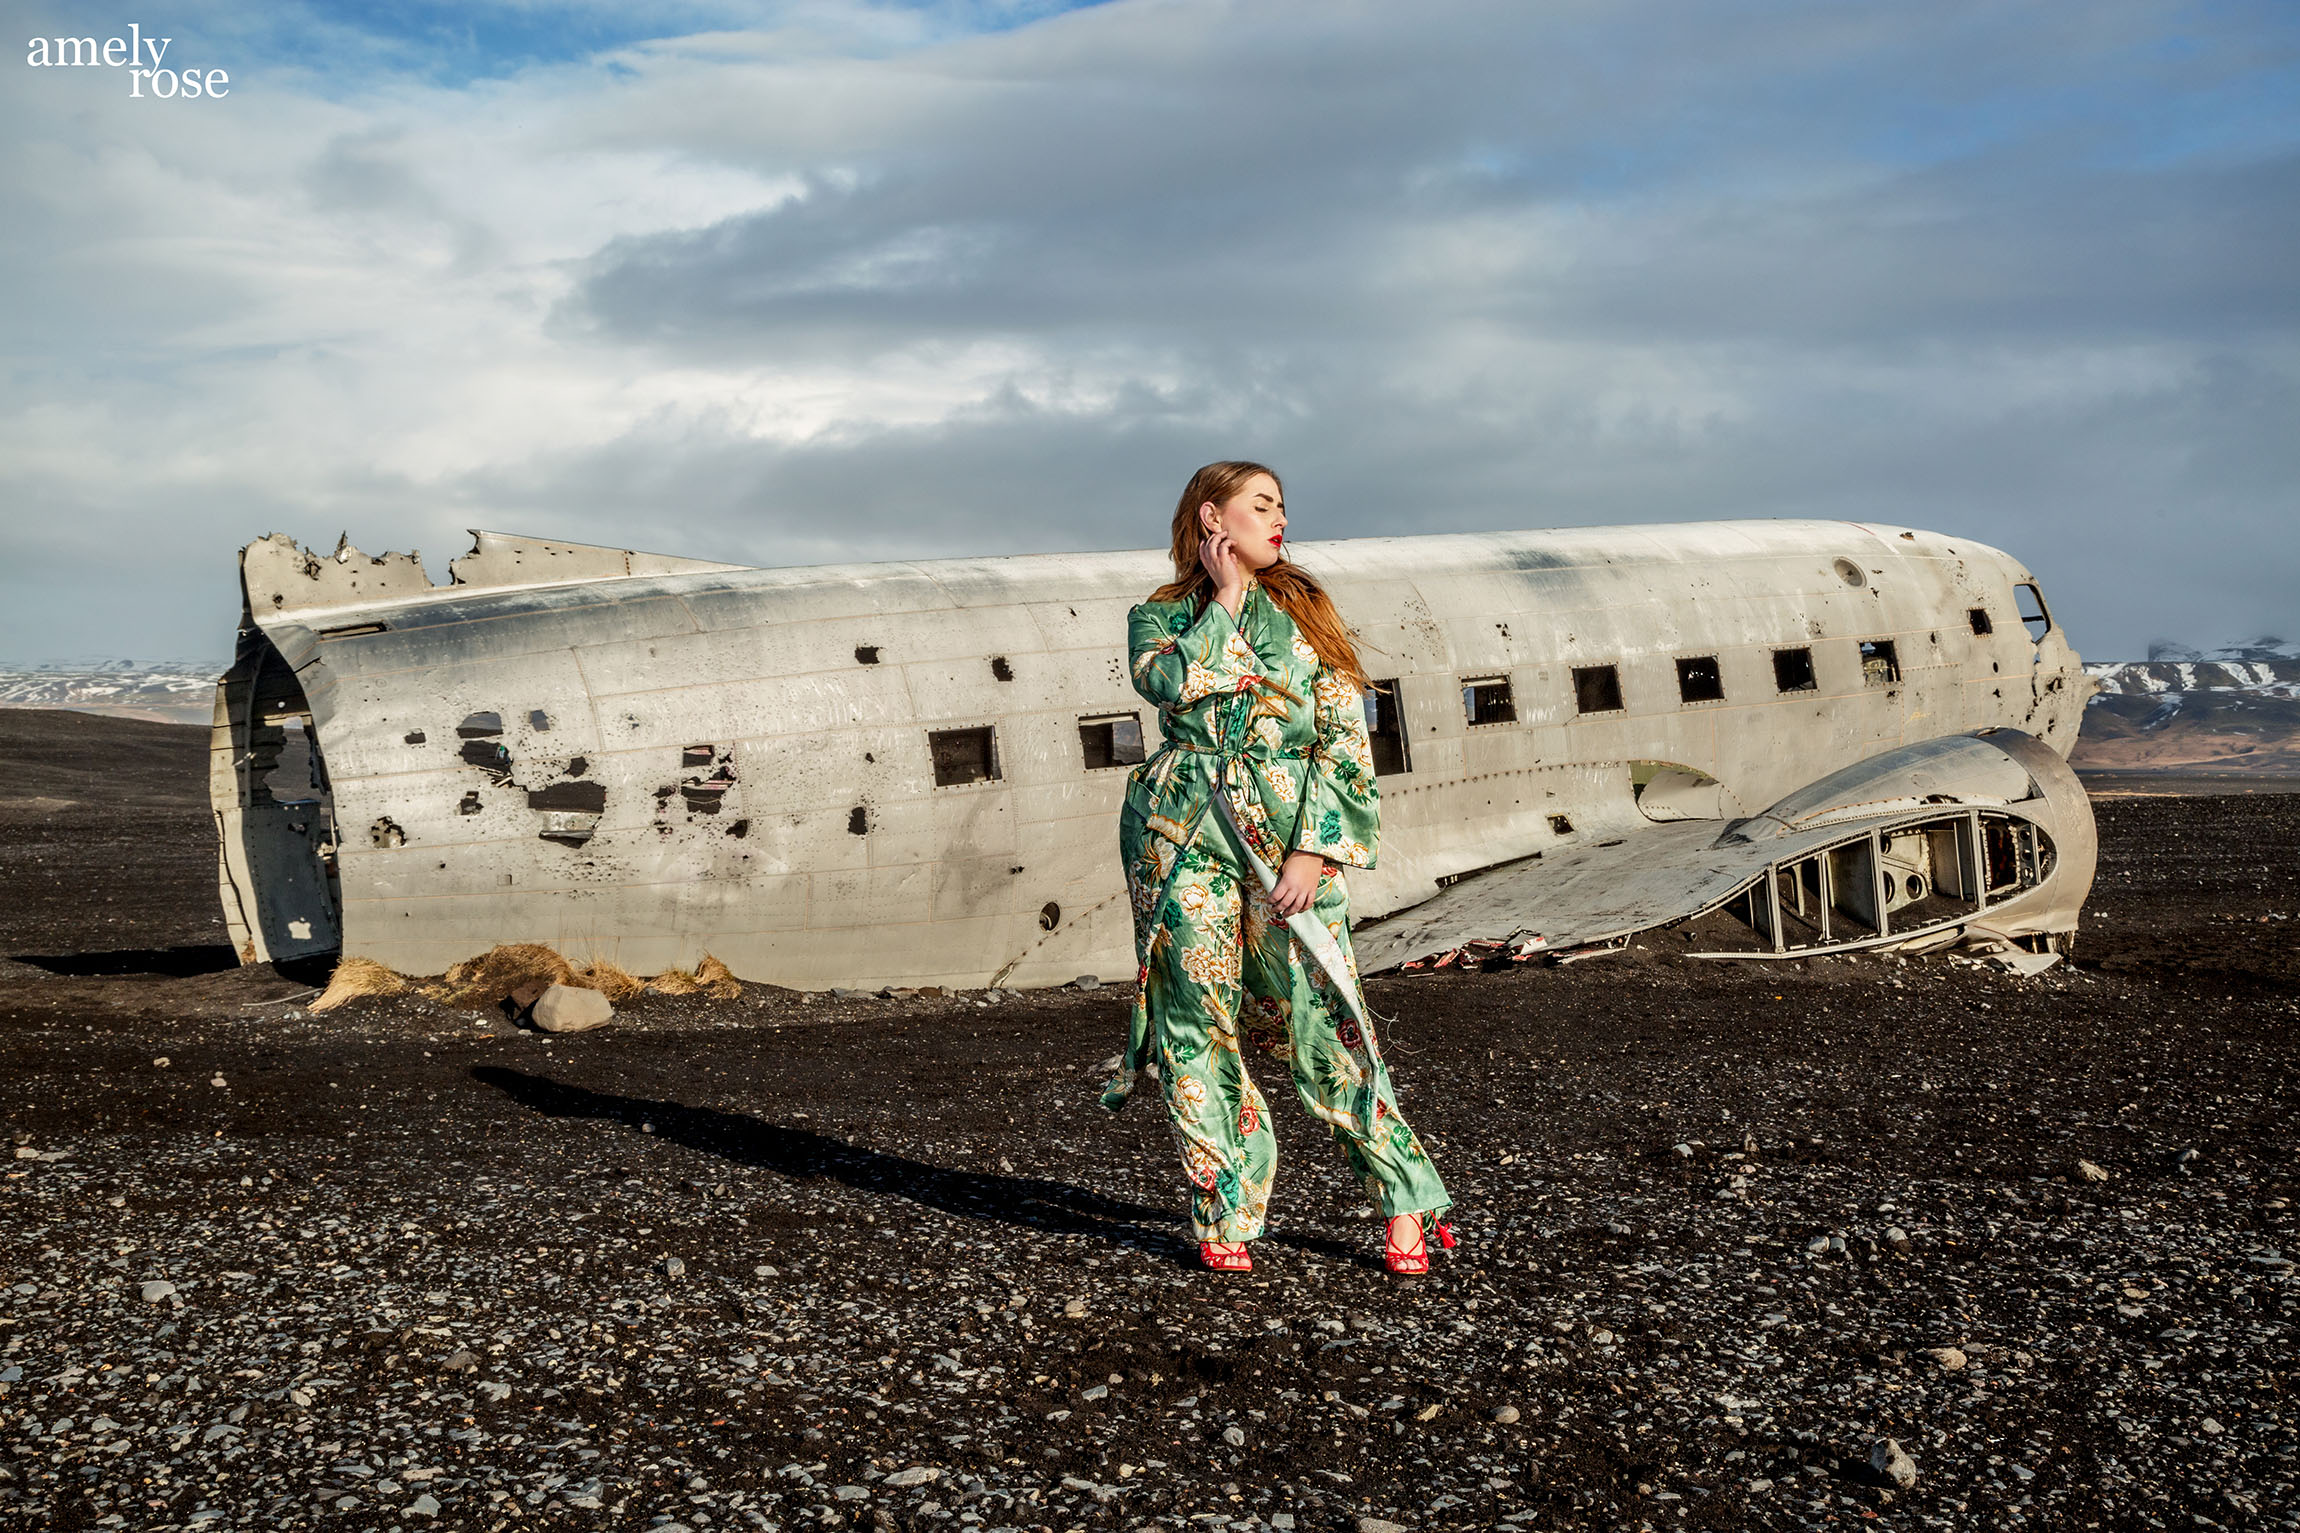 amely_rose_amelyrose_theamelyrose_iceland_is_island_traveltoiceland_airplanecrash_planecrash_fashion_influecer_modeblogger_travelblogger_travel